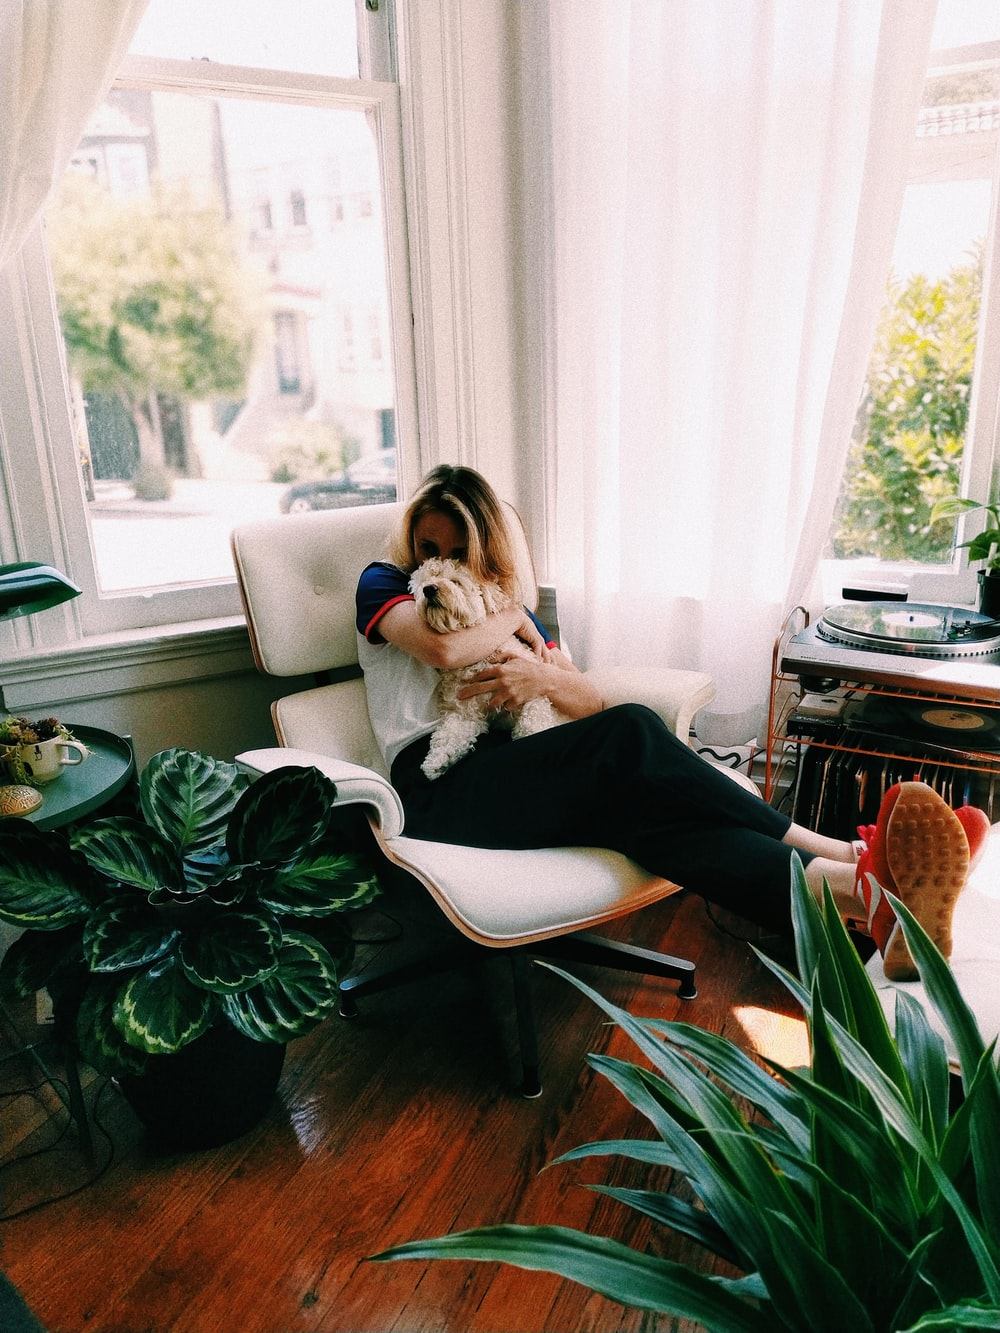 woman kissing dog while sitting on chair